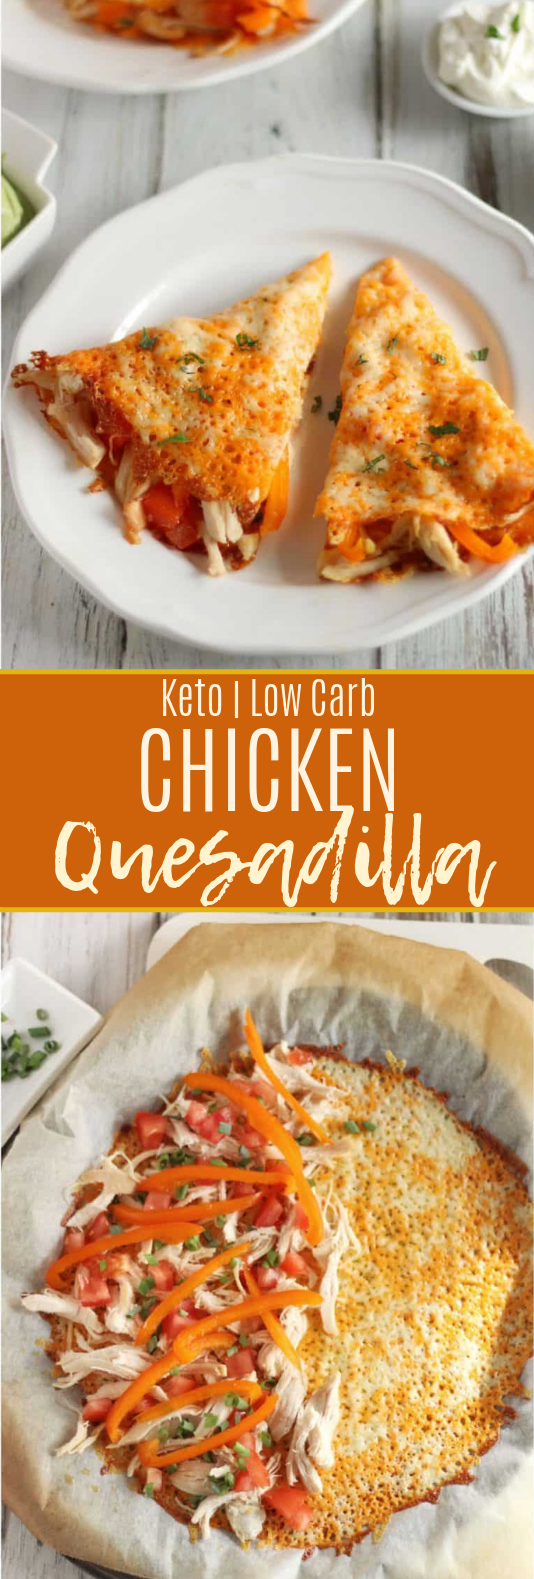 Keto Chicken Quesadilla #chicken #lowcarb